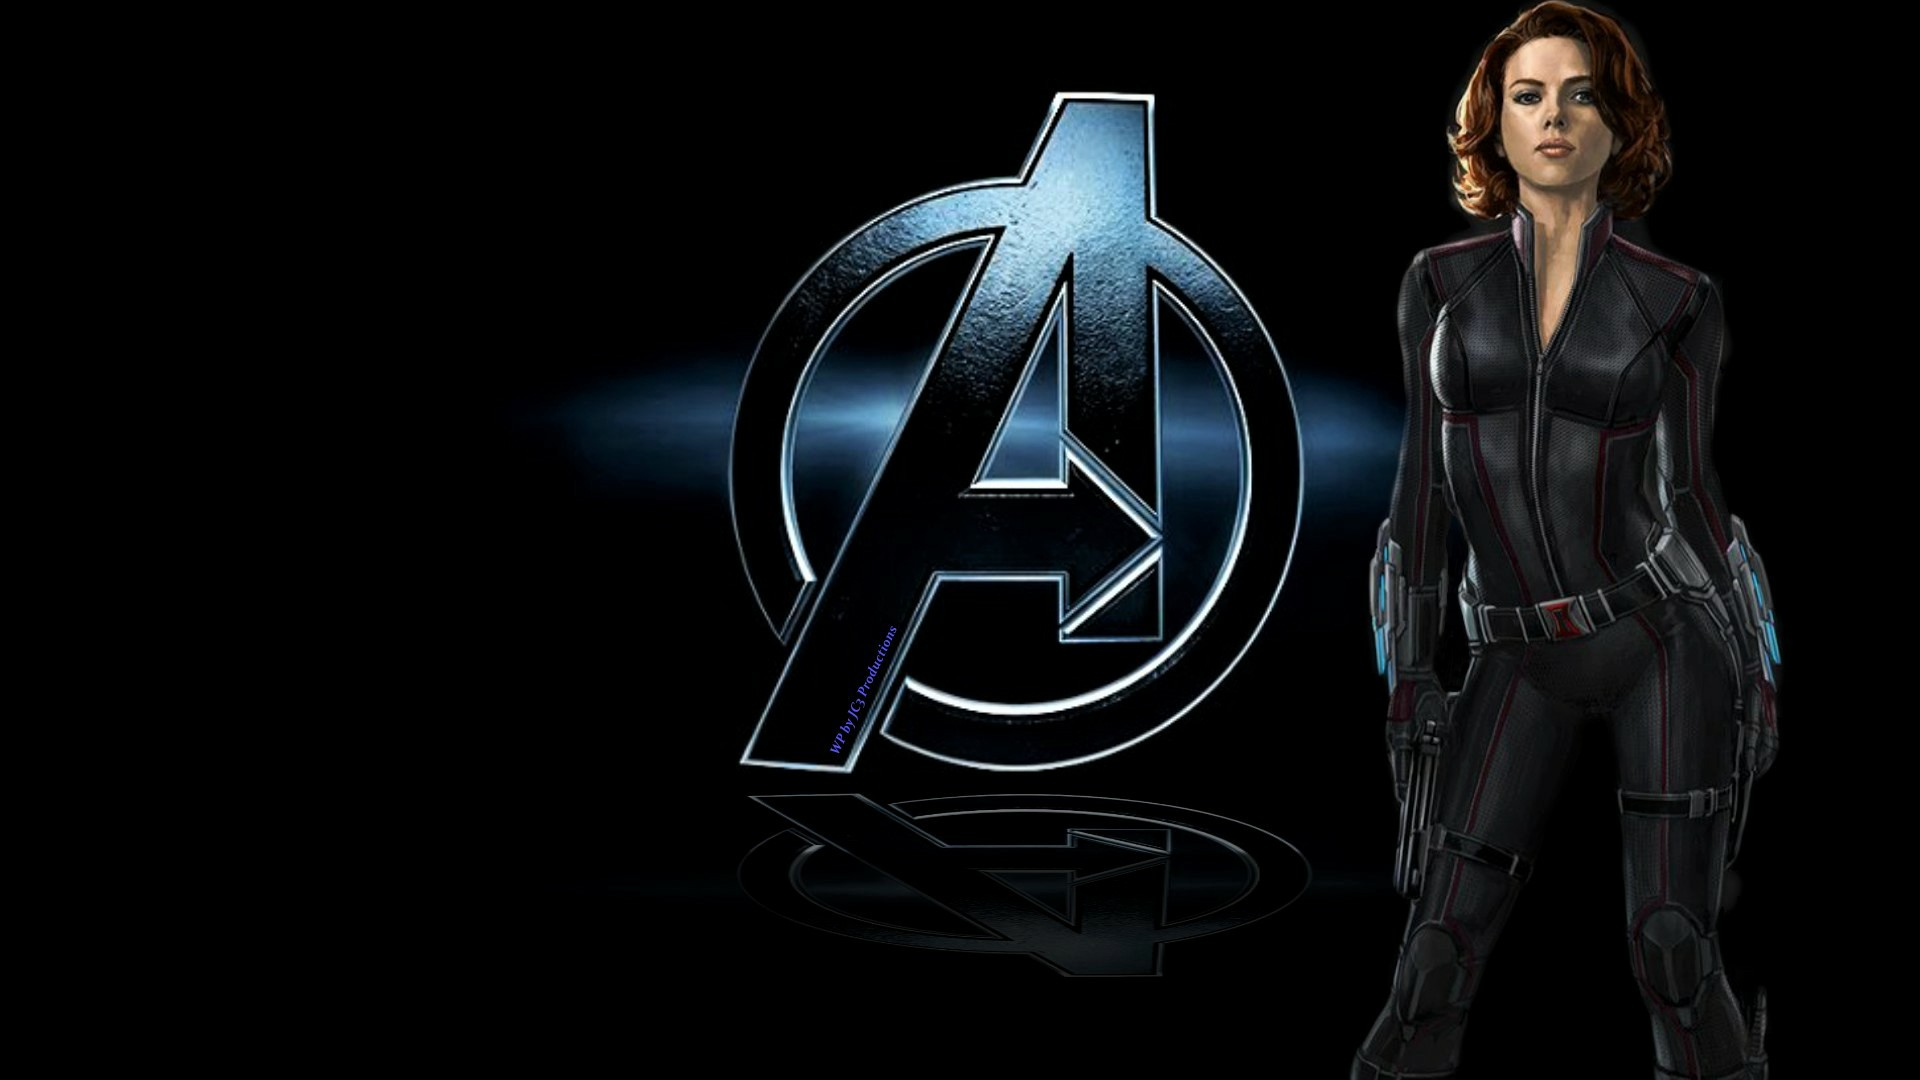 Black Widow Avenger Wallpaper By Curtdawg53 On Deviantart